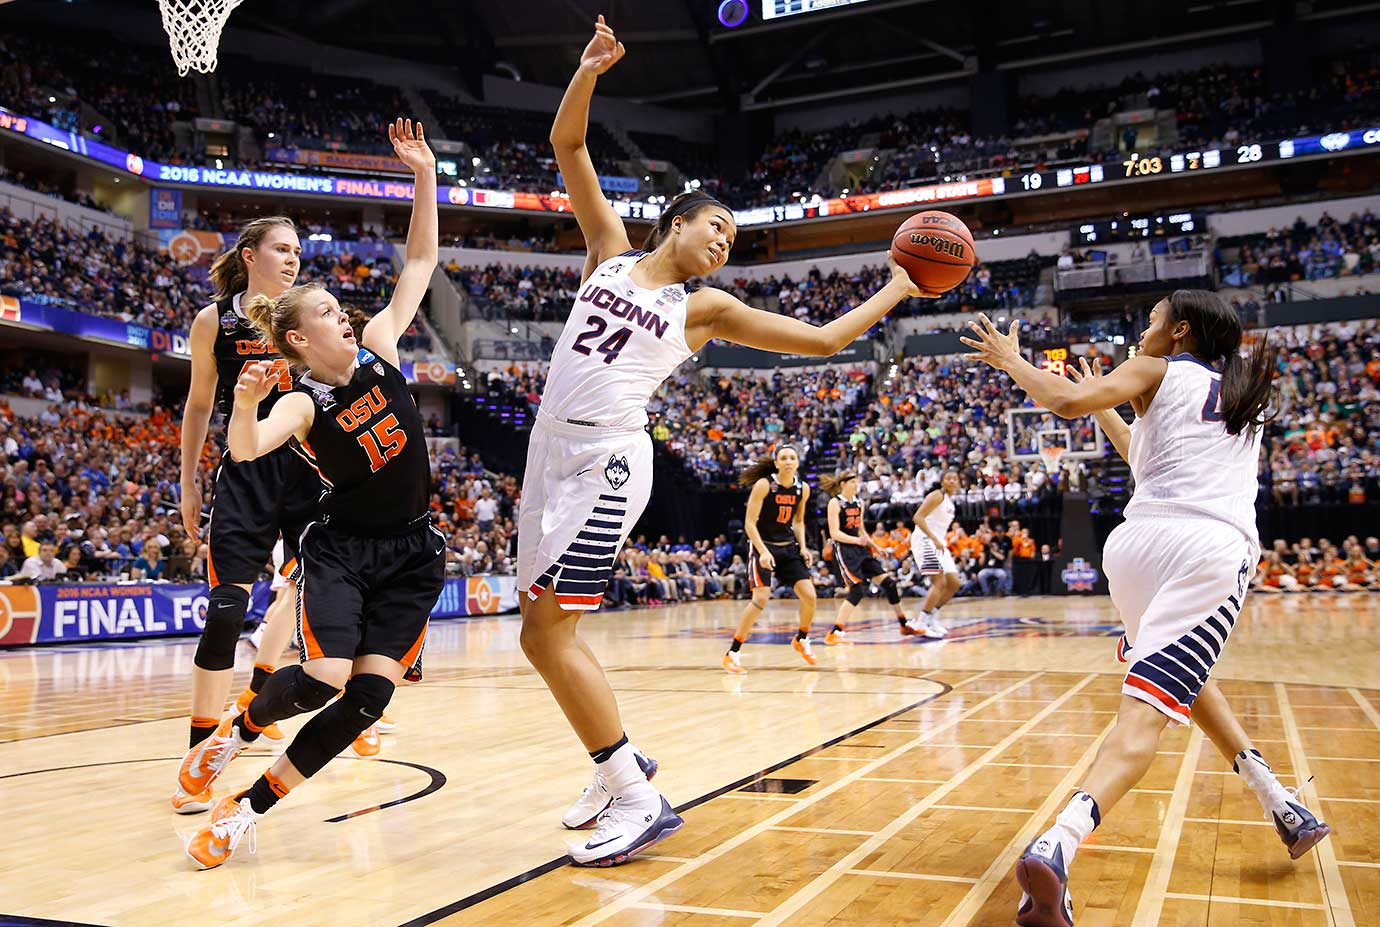 Connecticut's Napheesa Collier controls a rebound and starts a fast break with teammate Moriah Jefferson (4).